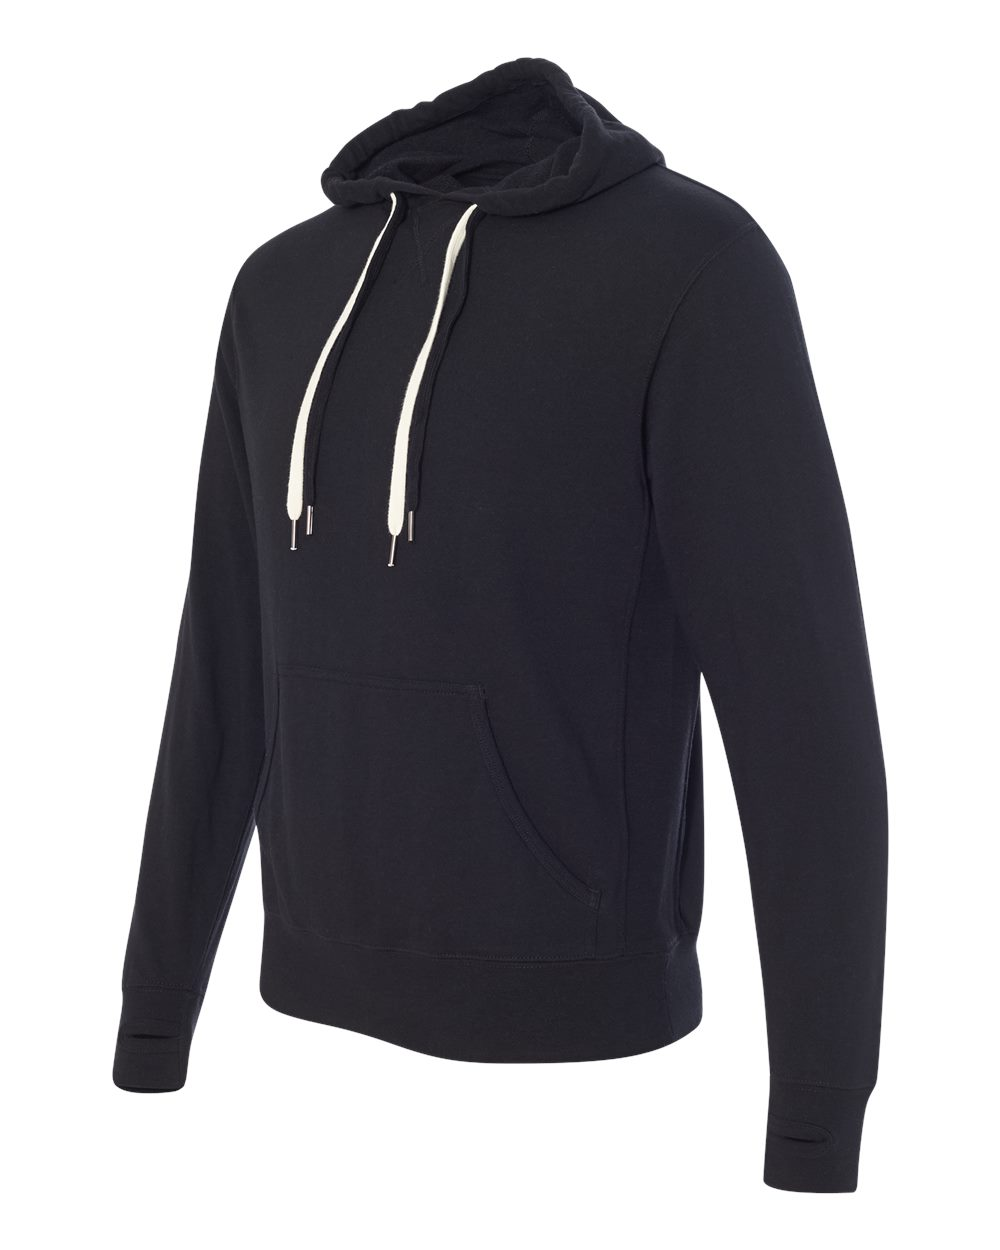 Independent Trading Co. PRM90HT - Unisex Midweight French Terry Hooded Pullover Sweatshirt